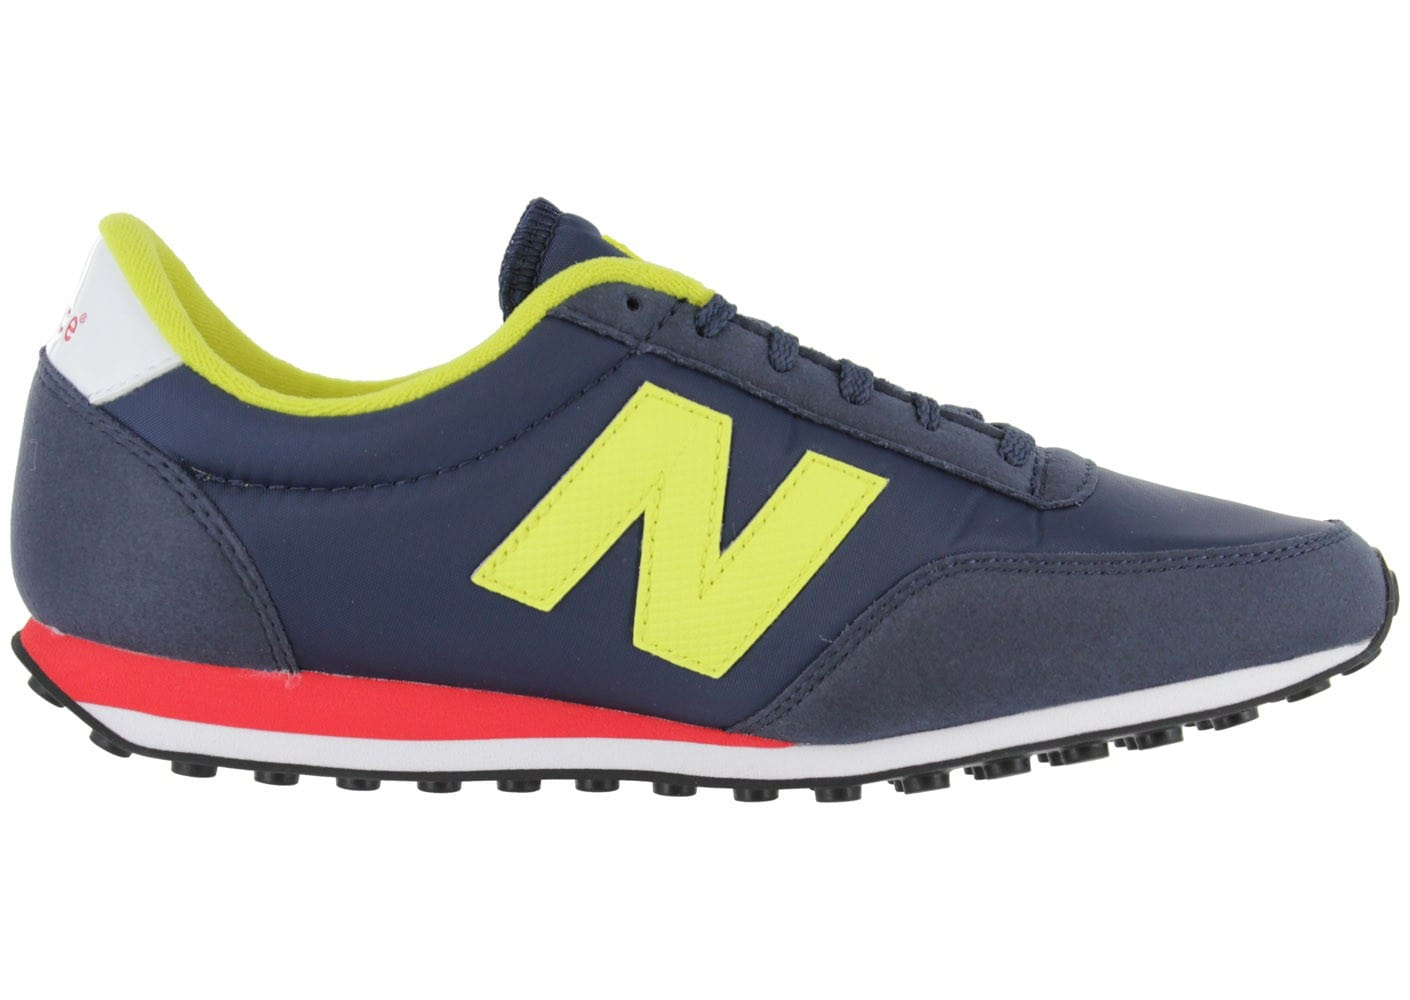 new balance u410 bleu marine jaune chaussures homme. Black Bedroom Furniture Sets. Home Design Ideas